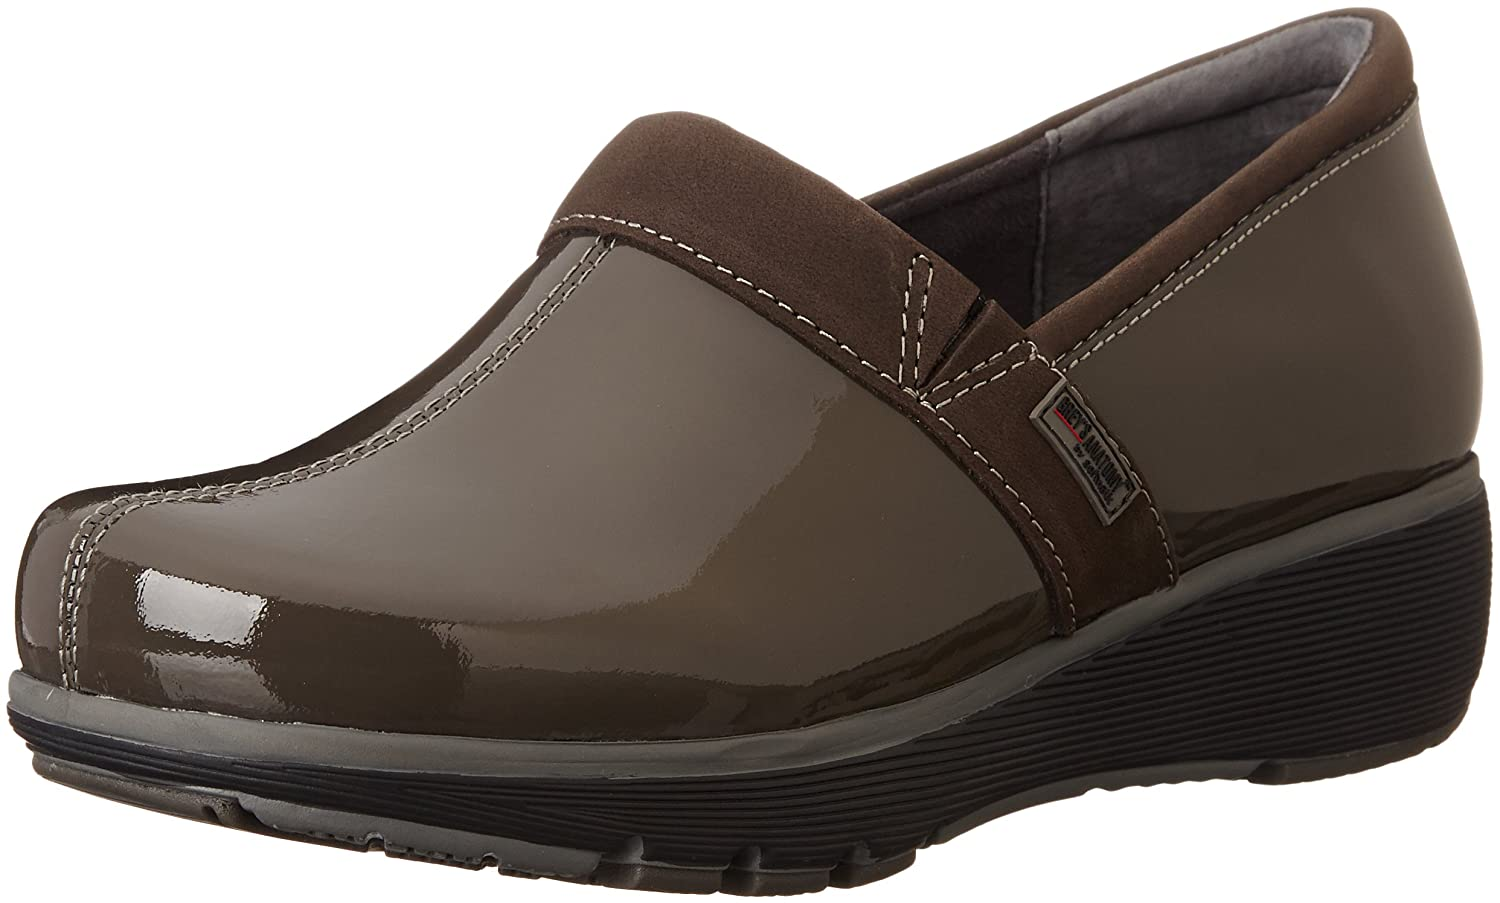 OluKai レディース Olukai B00J0A4J6W 8.5 B(M) US Women|Dark Grey Patent Dark Grey Patent 8.5 B(M) US Women